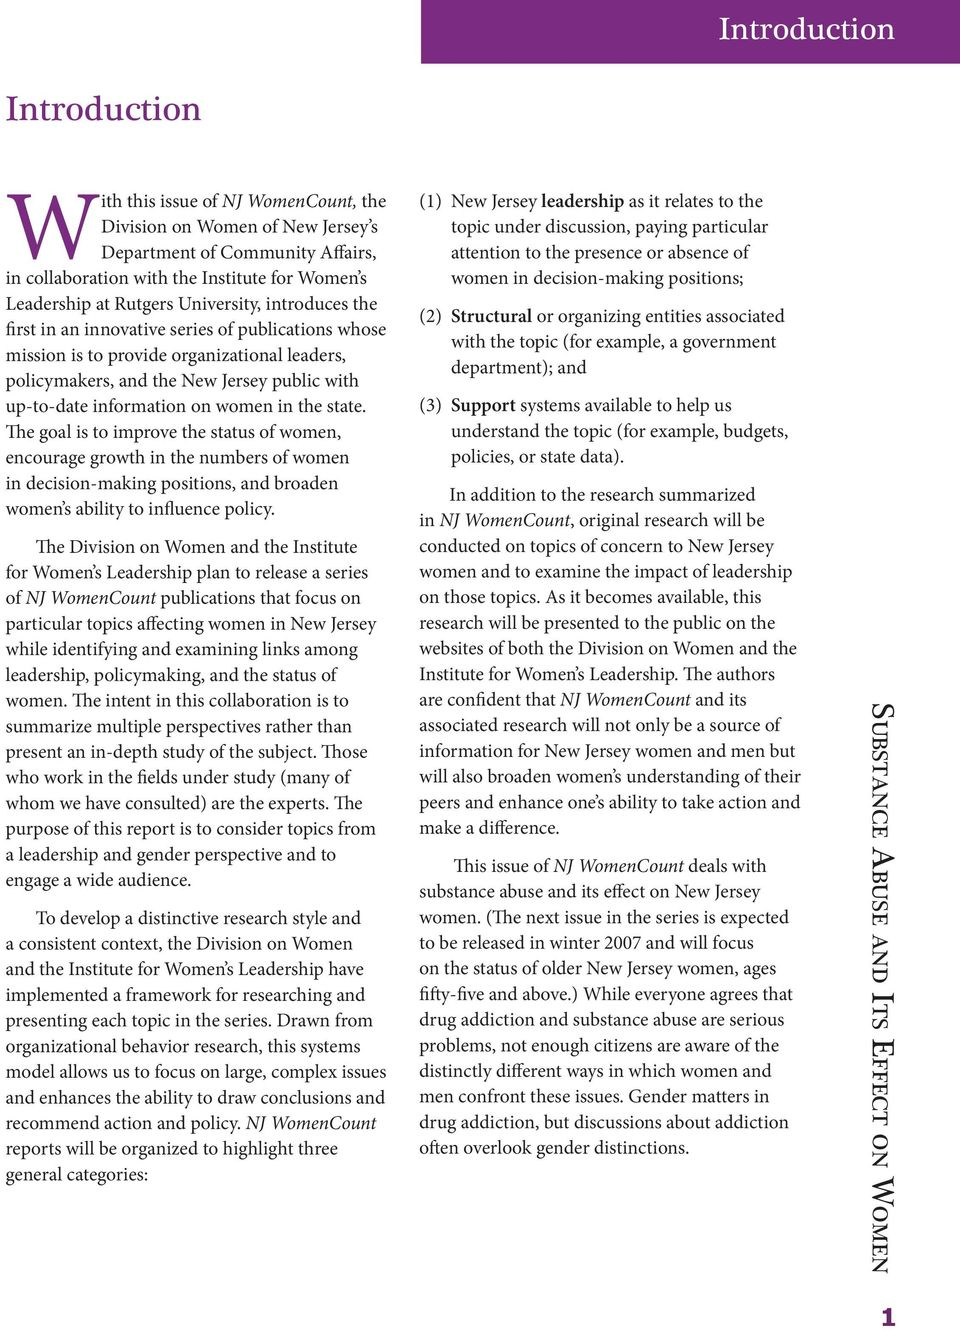 information on women in the state. The goal is to improve the status of women, encourage growth in the numbers of women in decision-making positions, and broaden women s ability to influence policy.